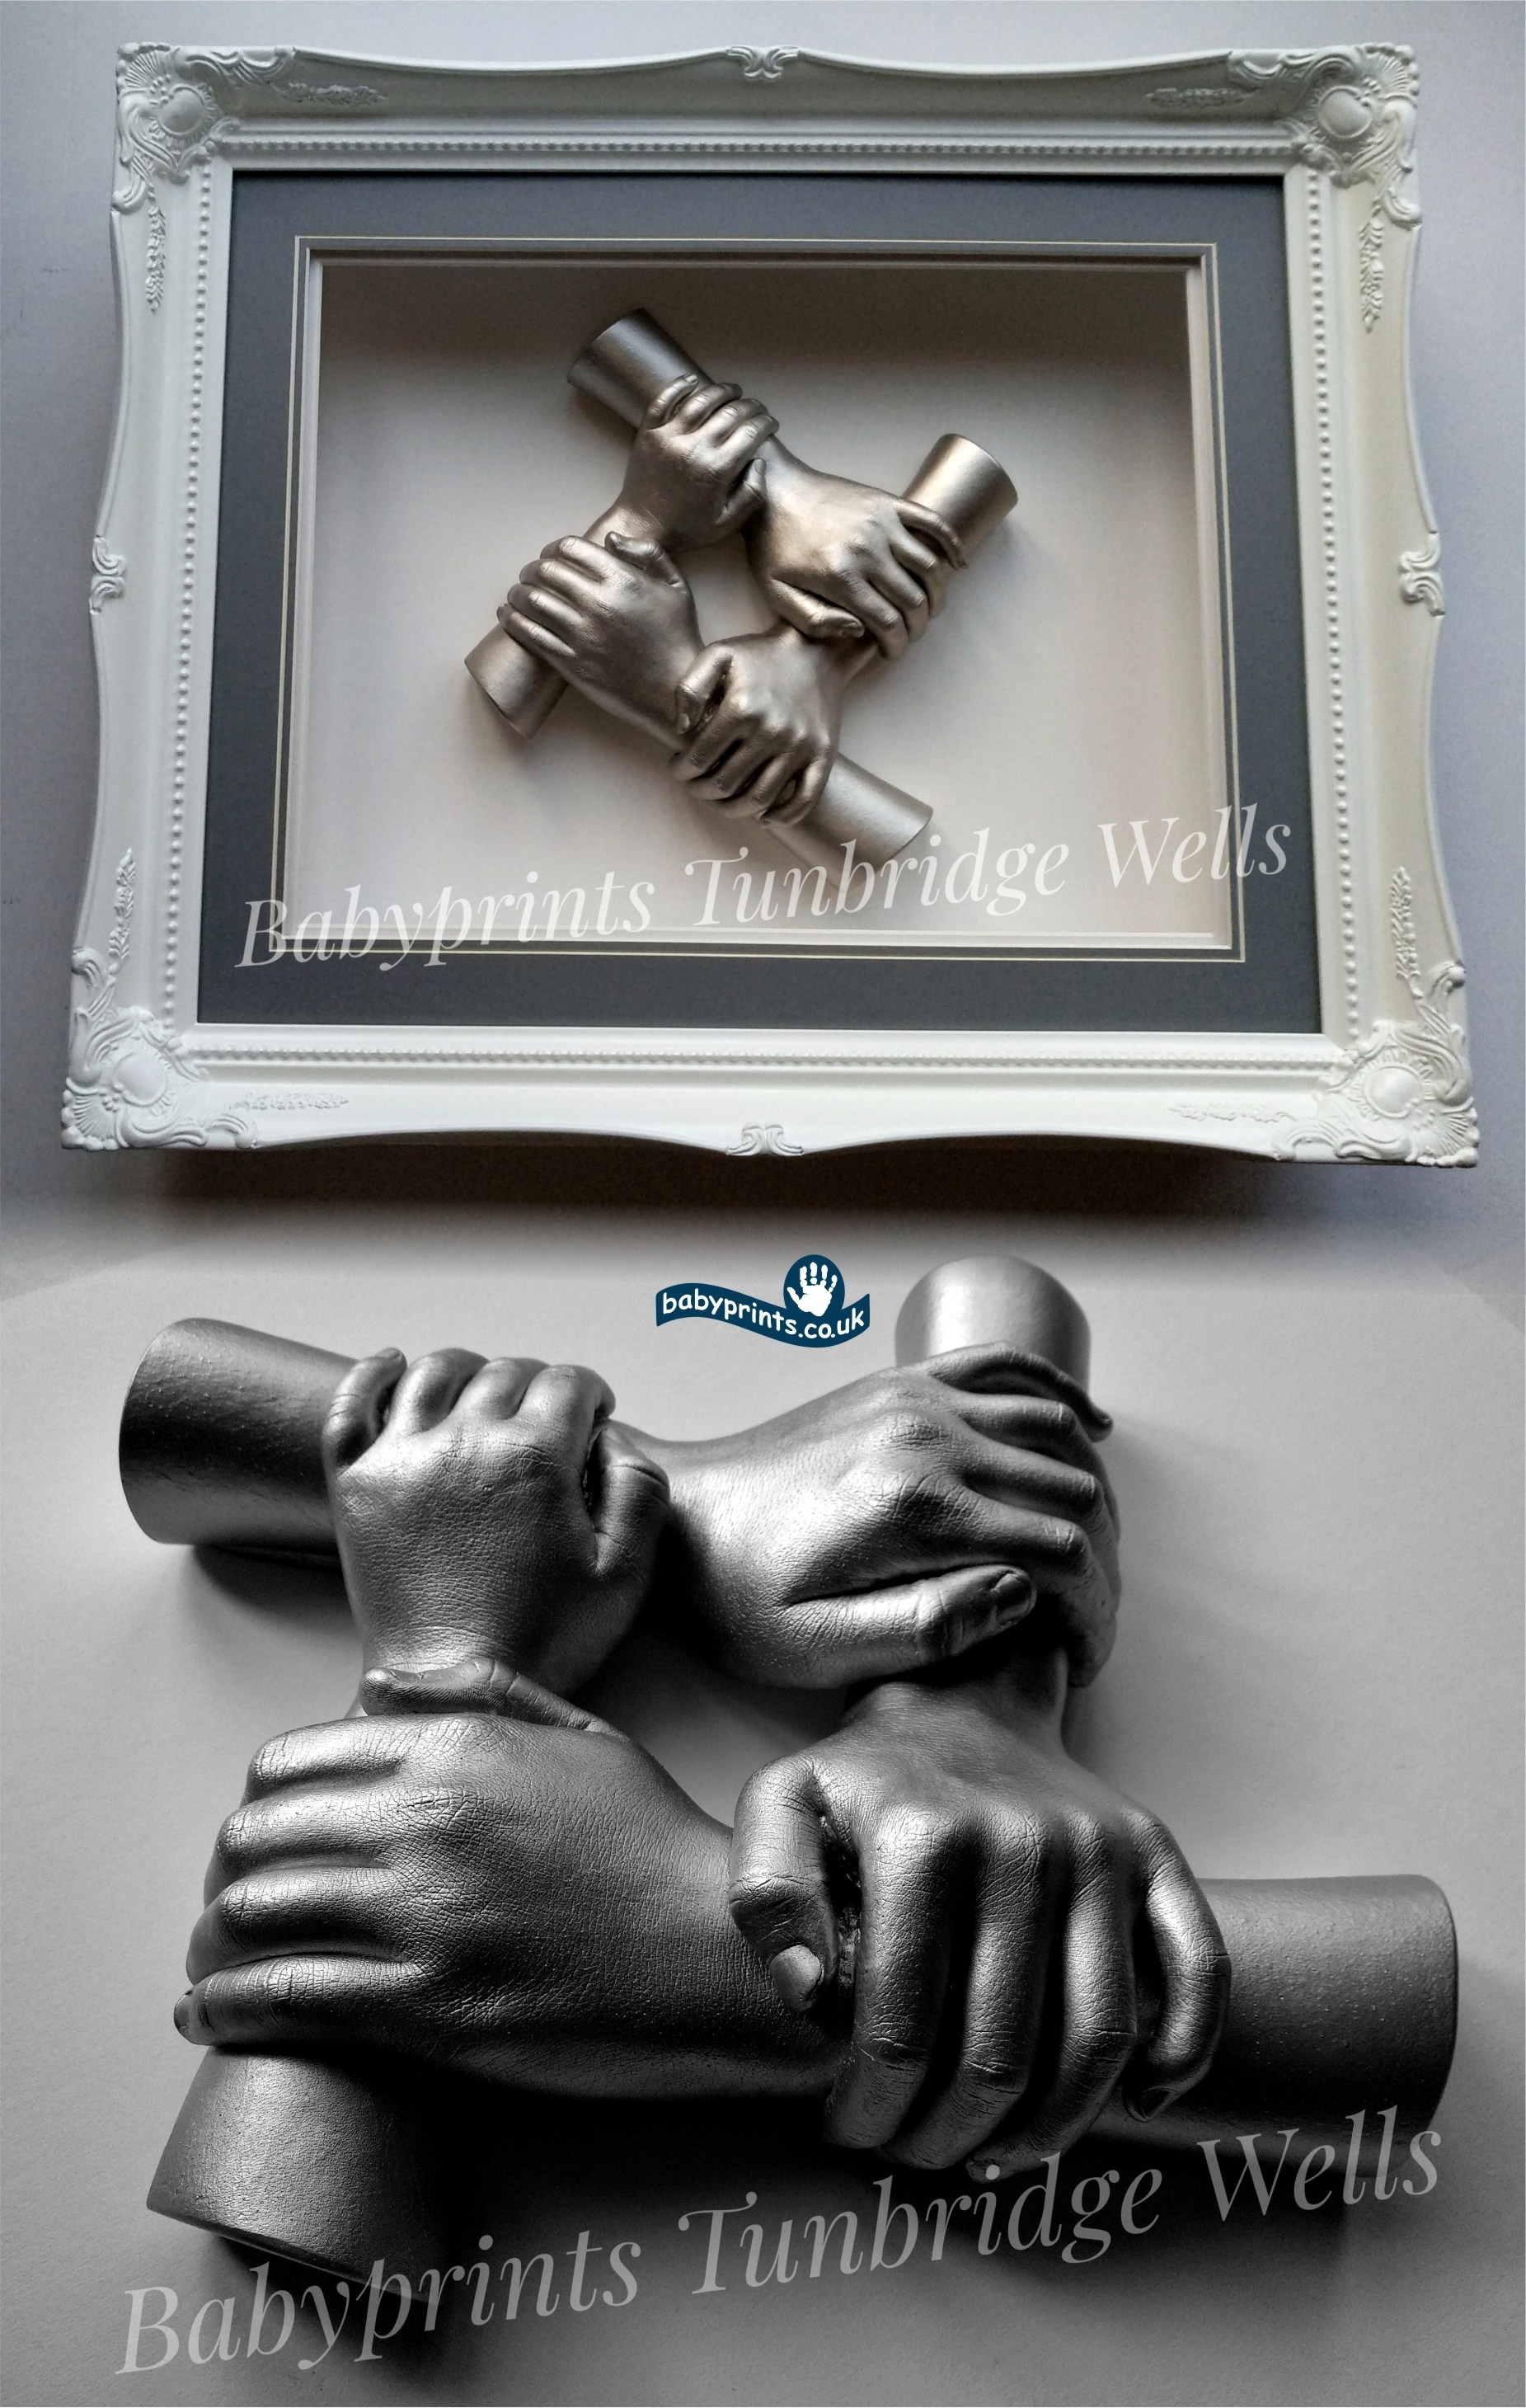 Stunning clasping hand casting